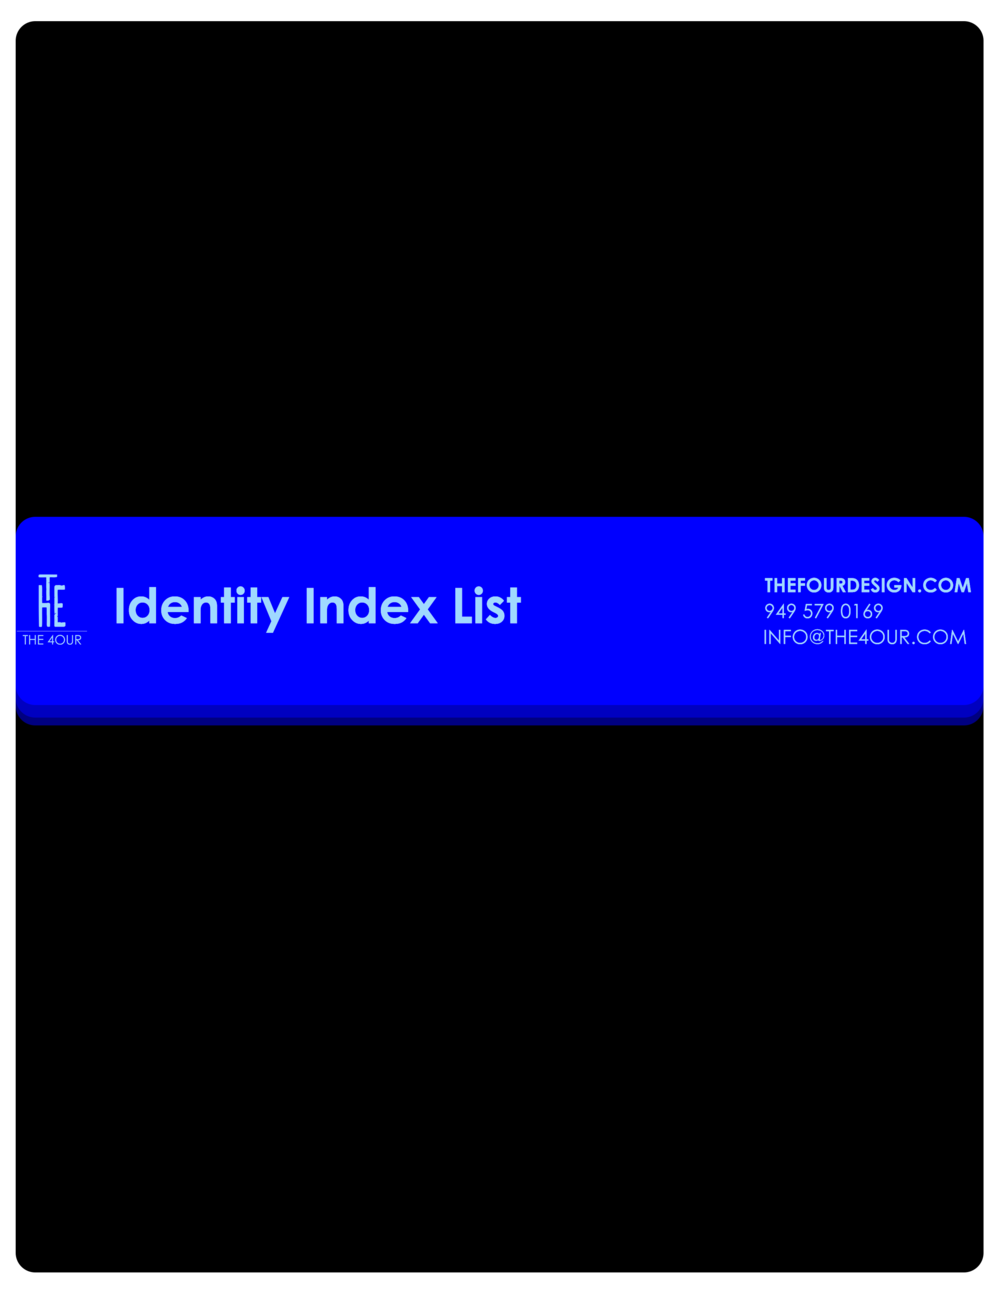 Identity Index List